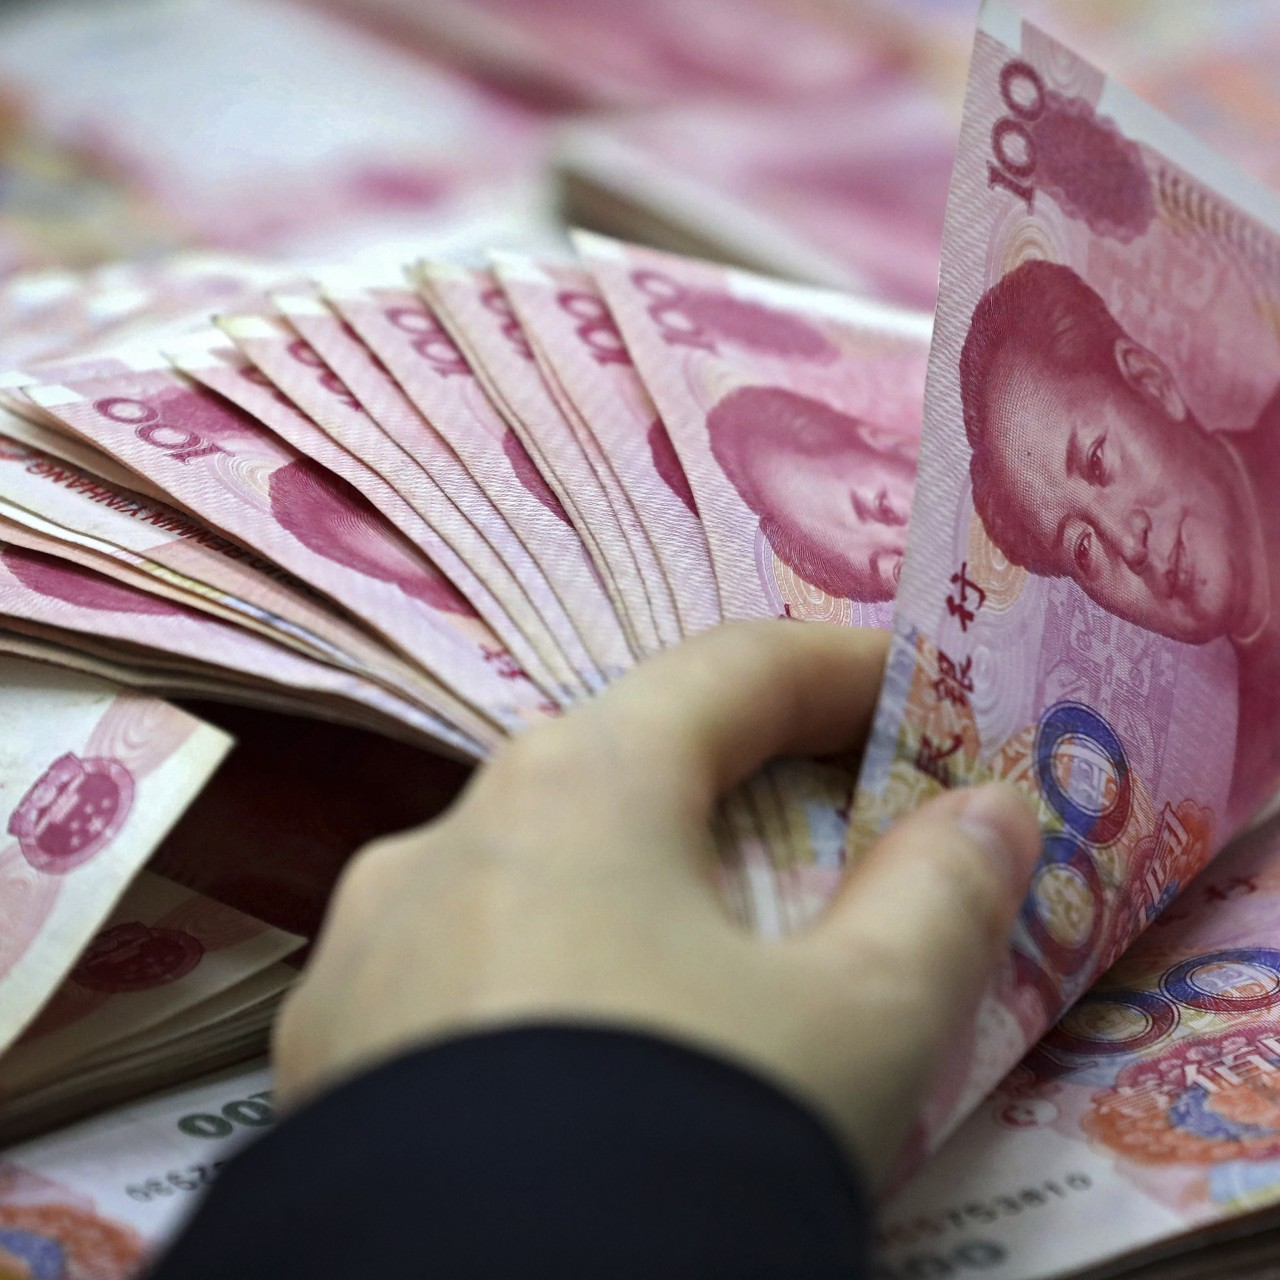 Volatility expected for Chinese yuan, as experts diverge on 2019